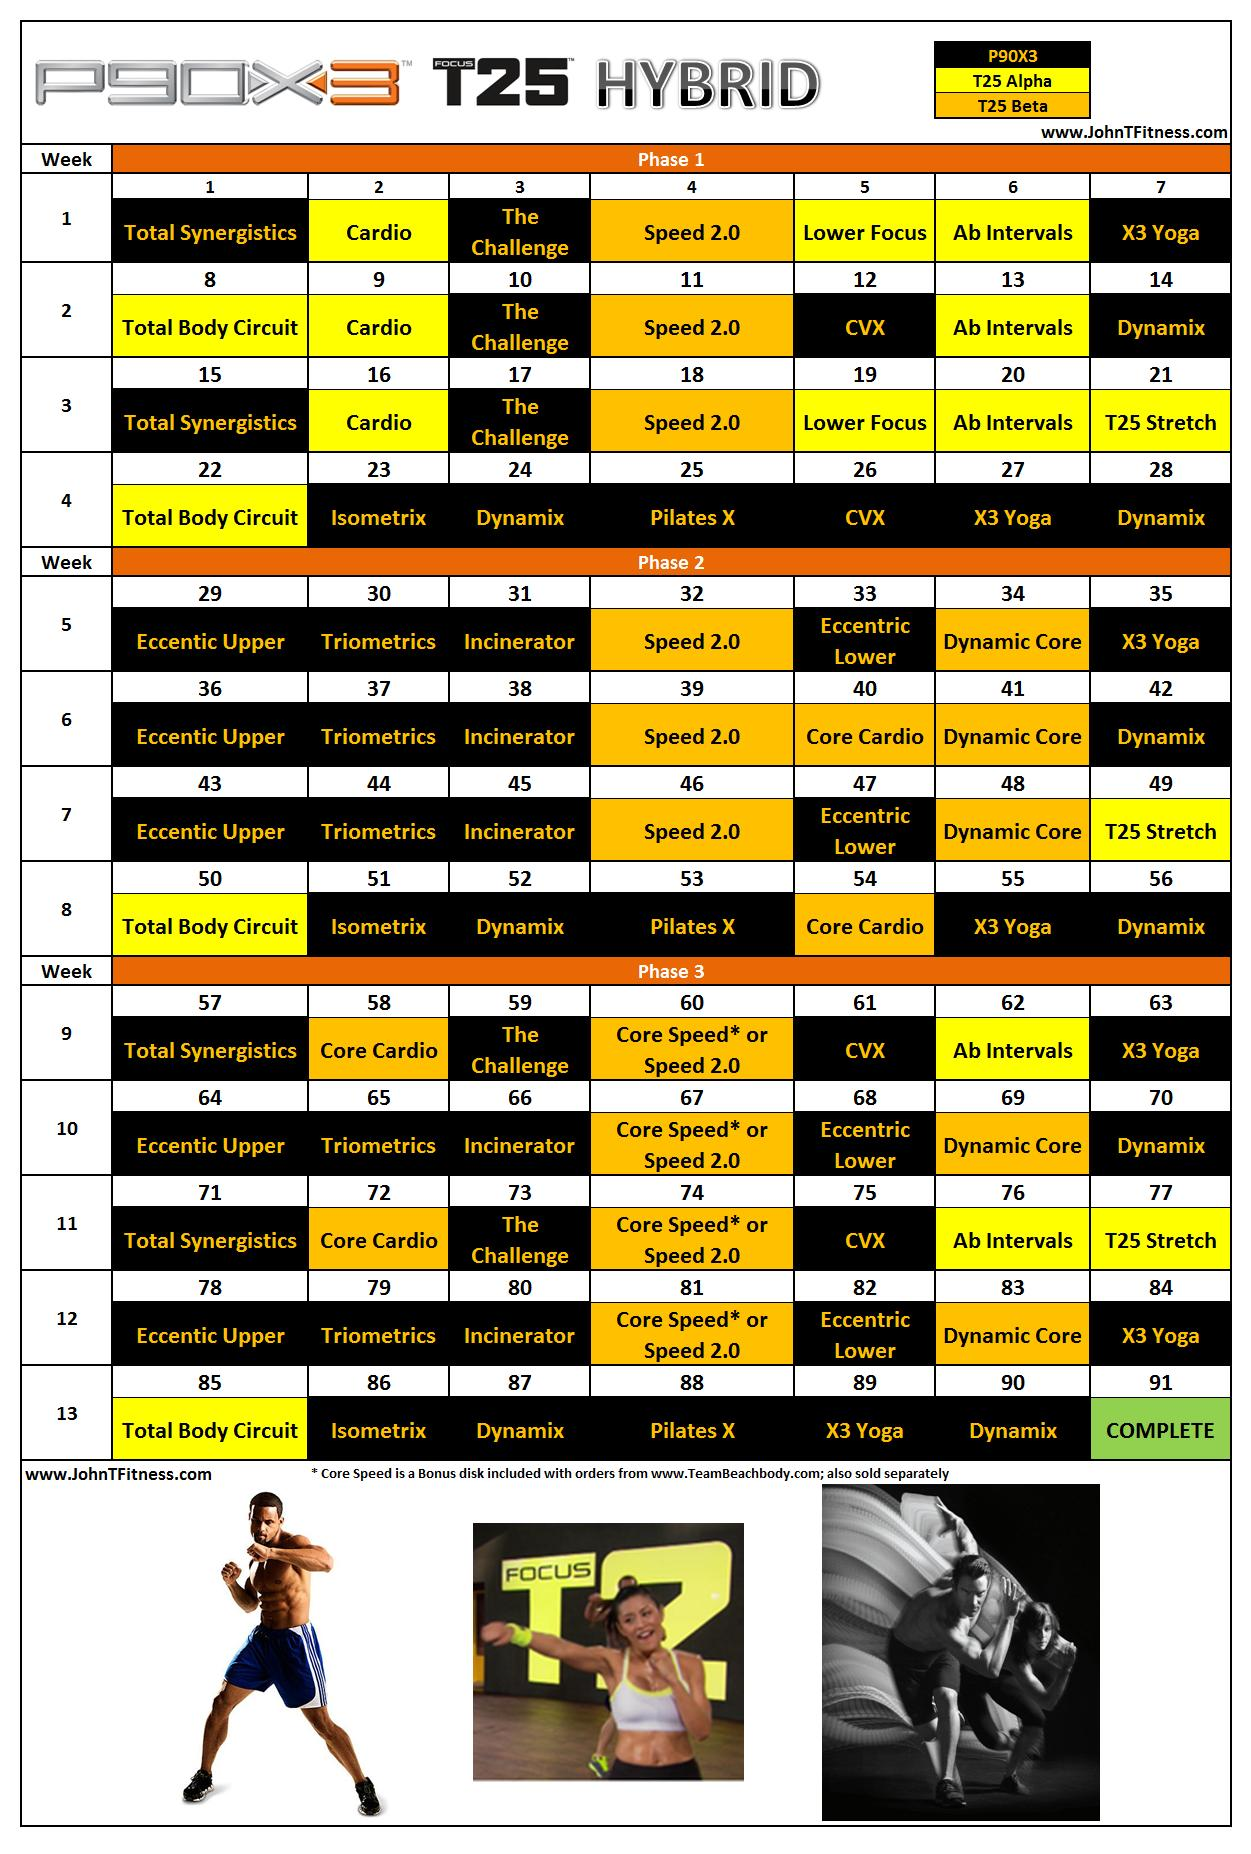 P90X3 T25 Hybrid Schedule (click to enlarge)